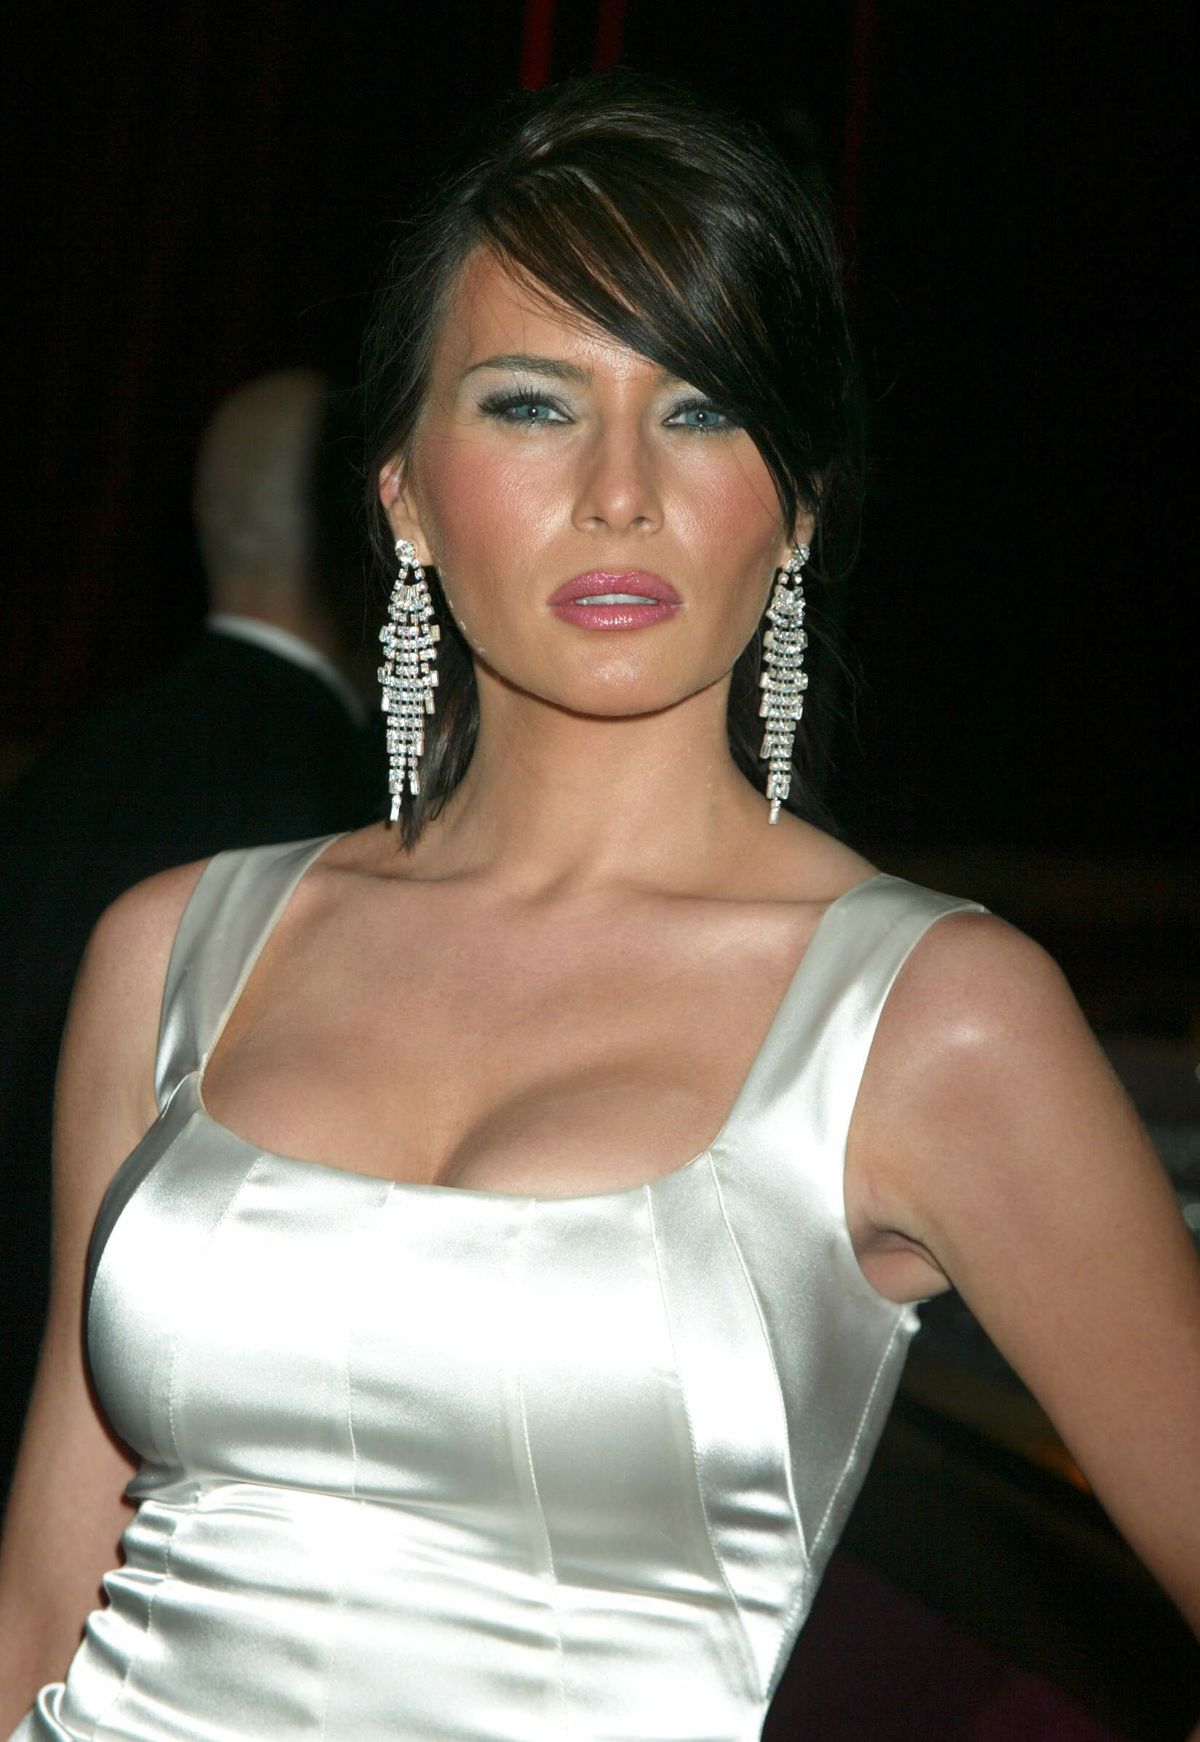 49 Hottest Melania Trump Bikini Pictures Are Just Too Damn Sexy | Best Of Comic Books